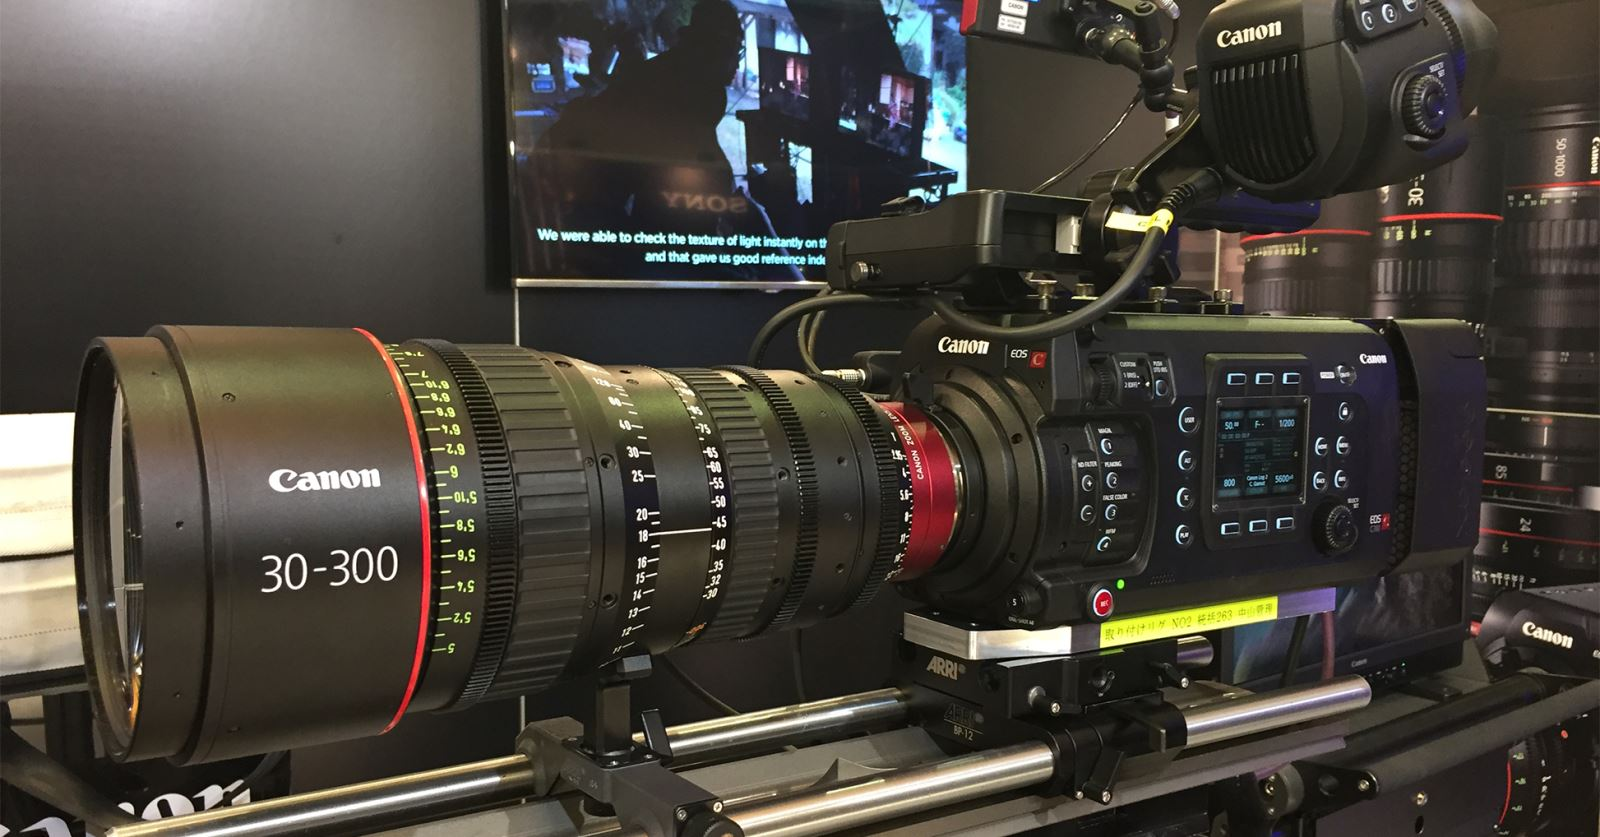 Canon 30–300 lens on display at the recent Camerimage exhibition in Bydgoszcz